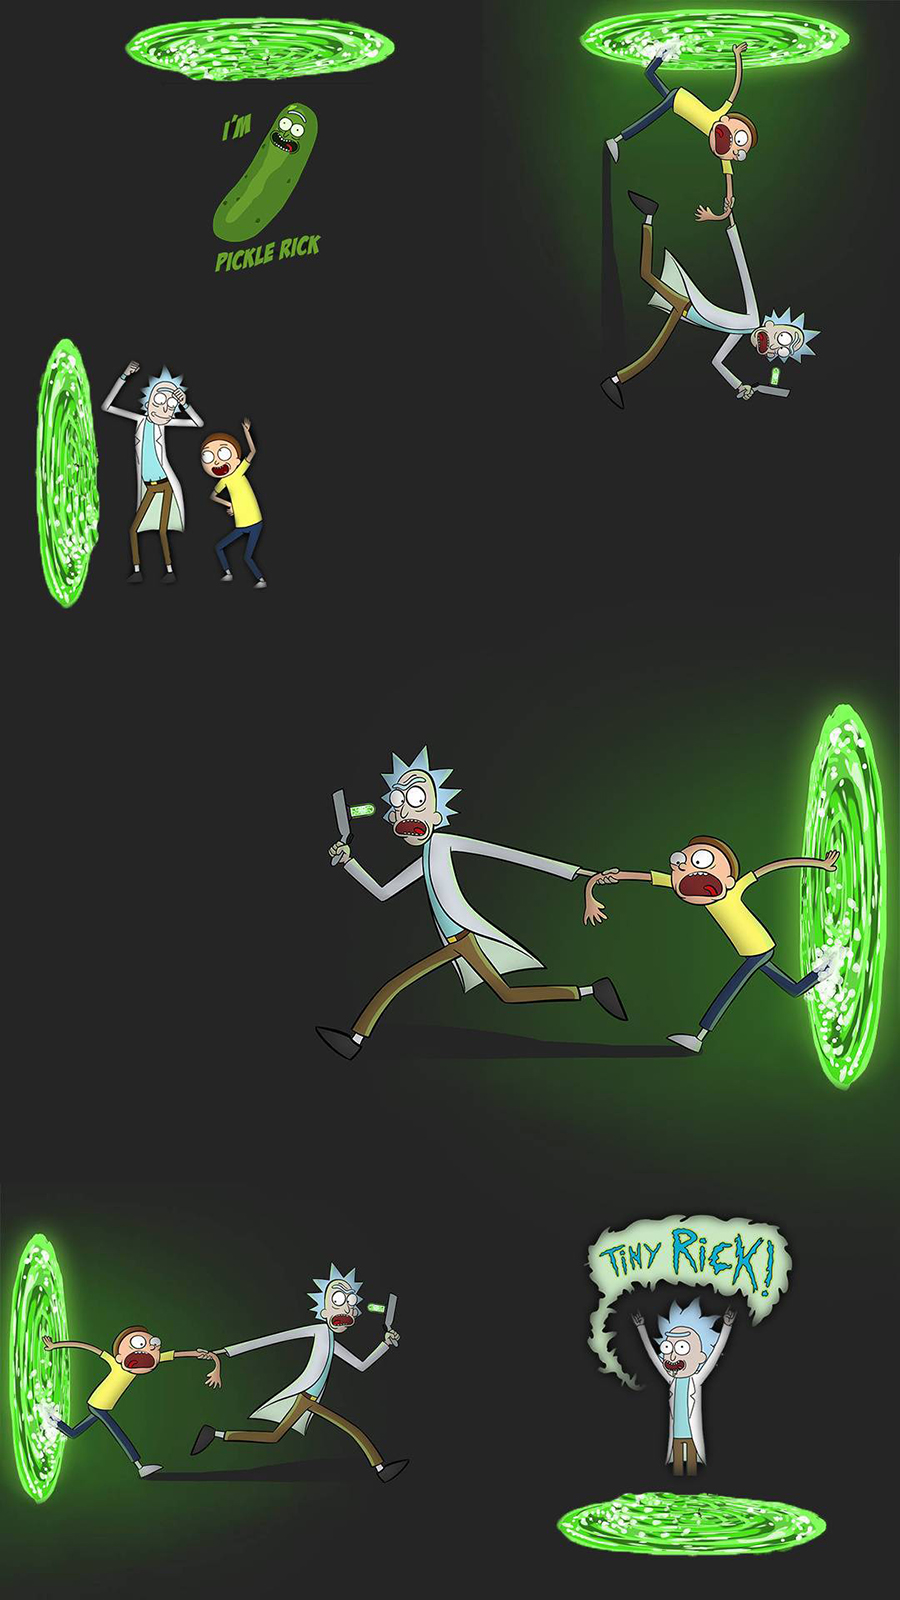 Rick and Morty Lets Go Wallpapers Now Download For Your Device